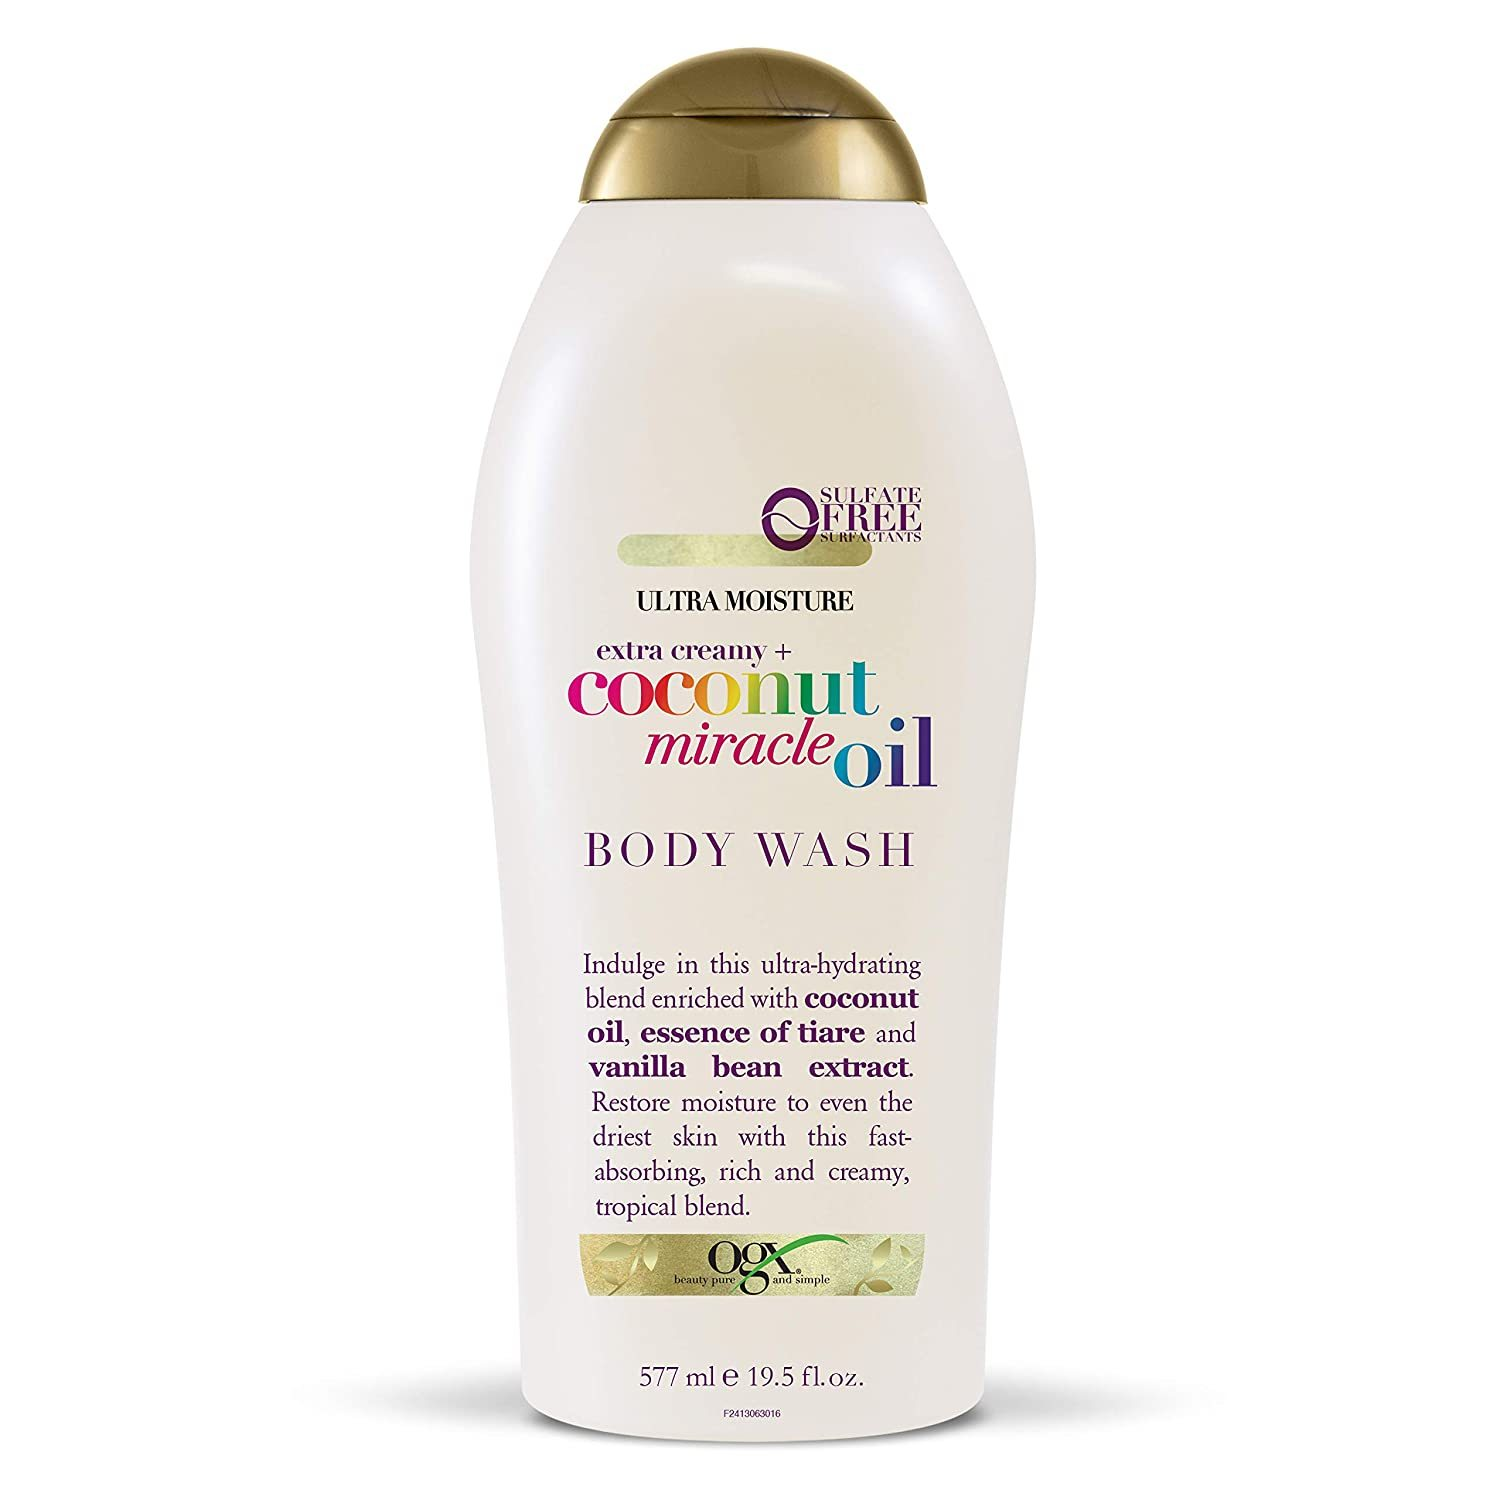 OGX Extra Creamy + Coconut Miracle Oil Ultra Moisture Body Wash, 19.5 Fl Oz - $14.00